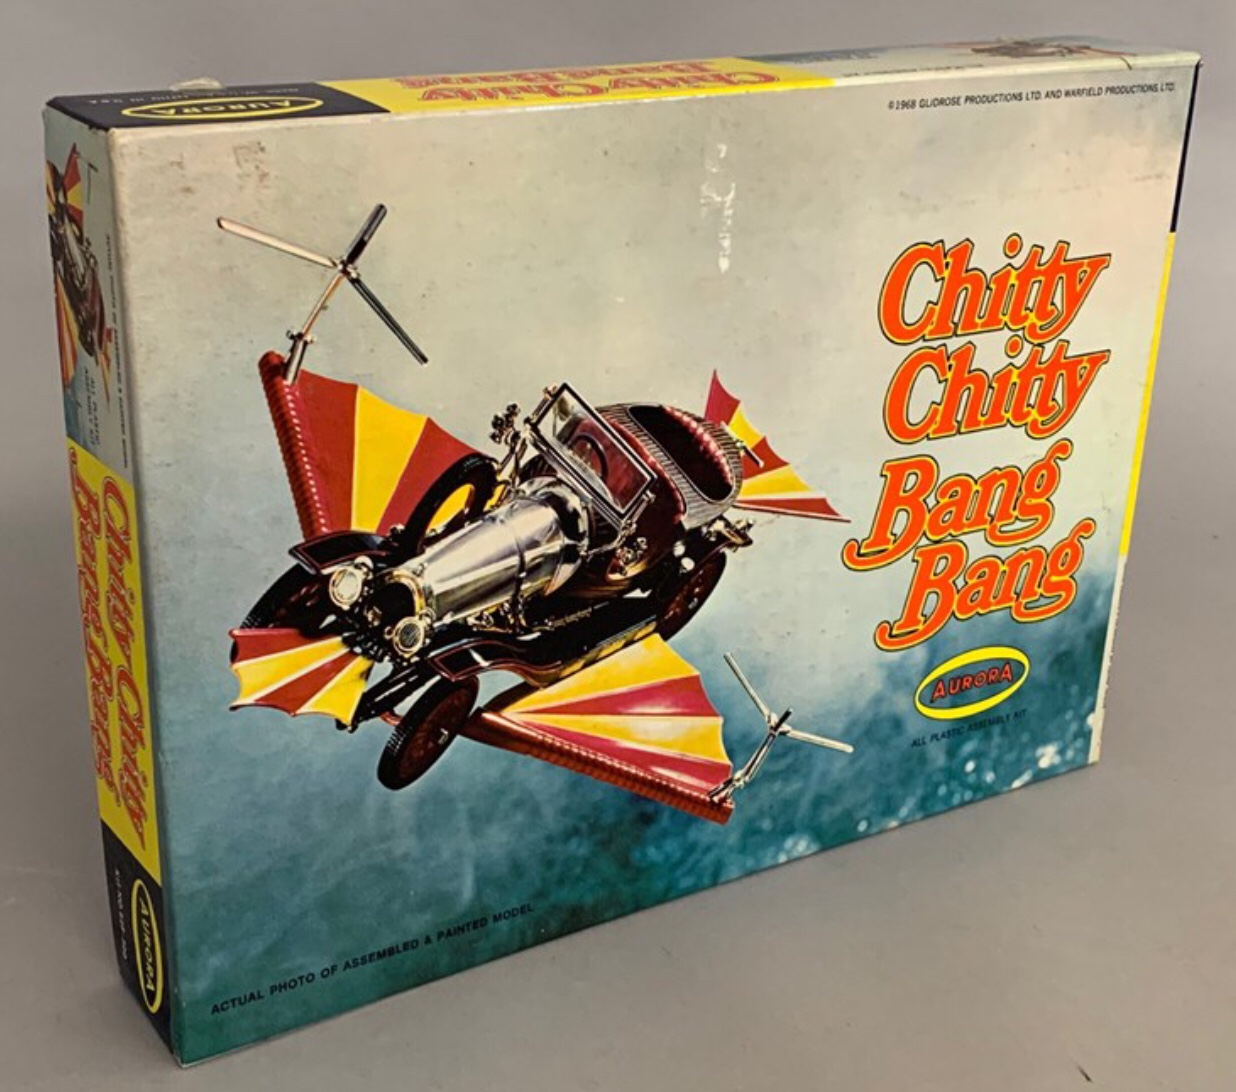 AURORA Chitty Chitty Bang Bang plastic model kit, Copyright Glidrose Productions Ltd. 1968